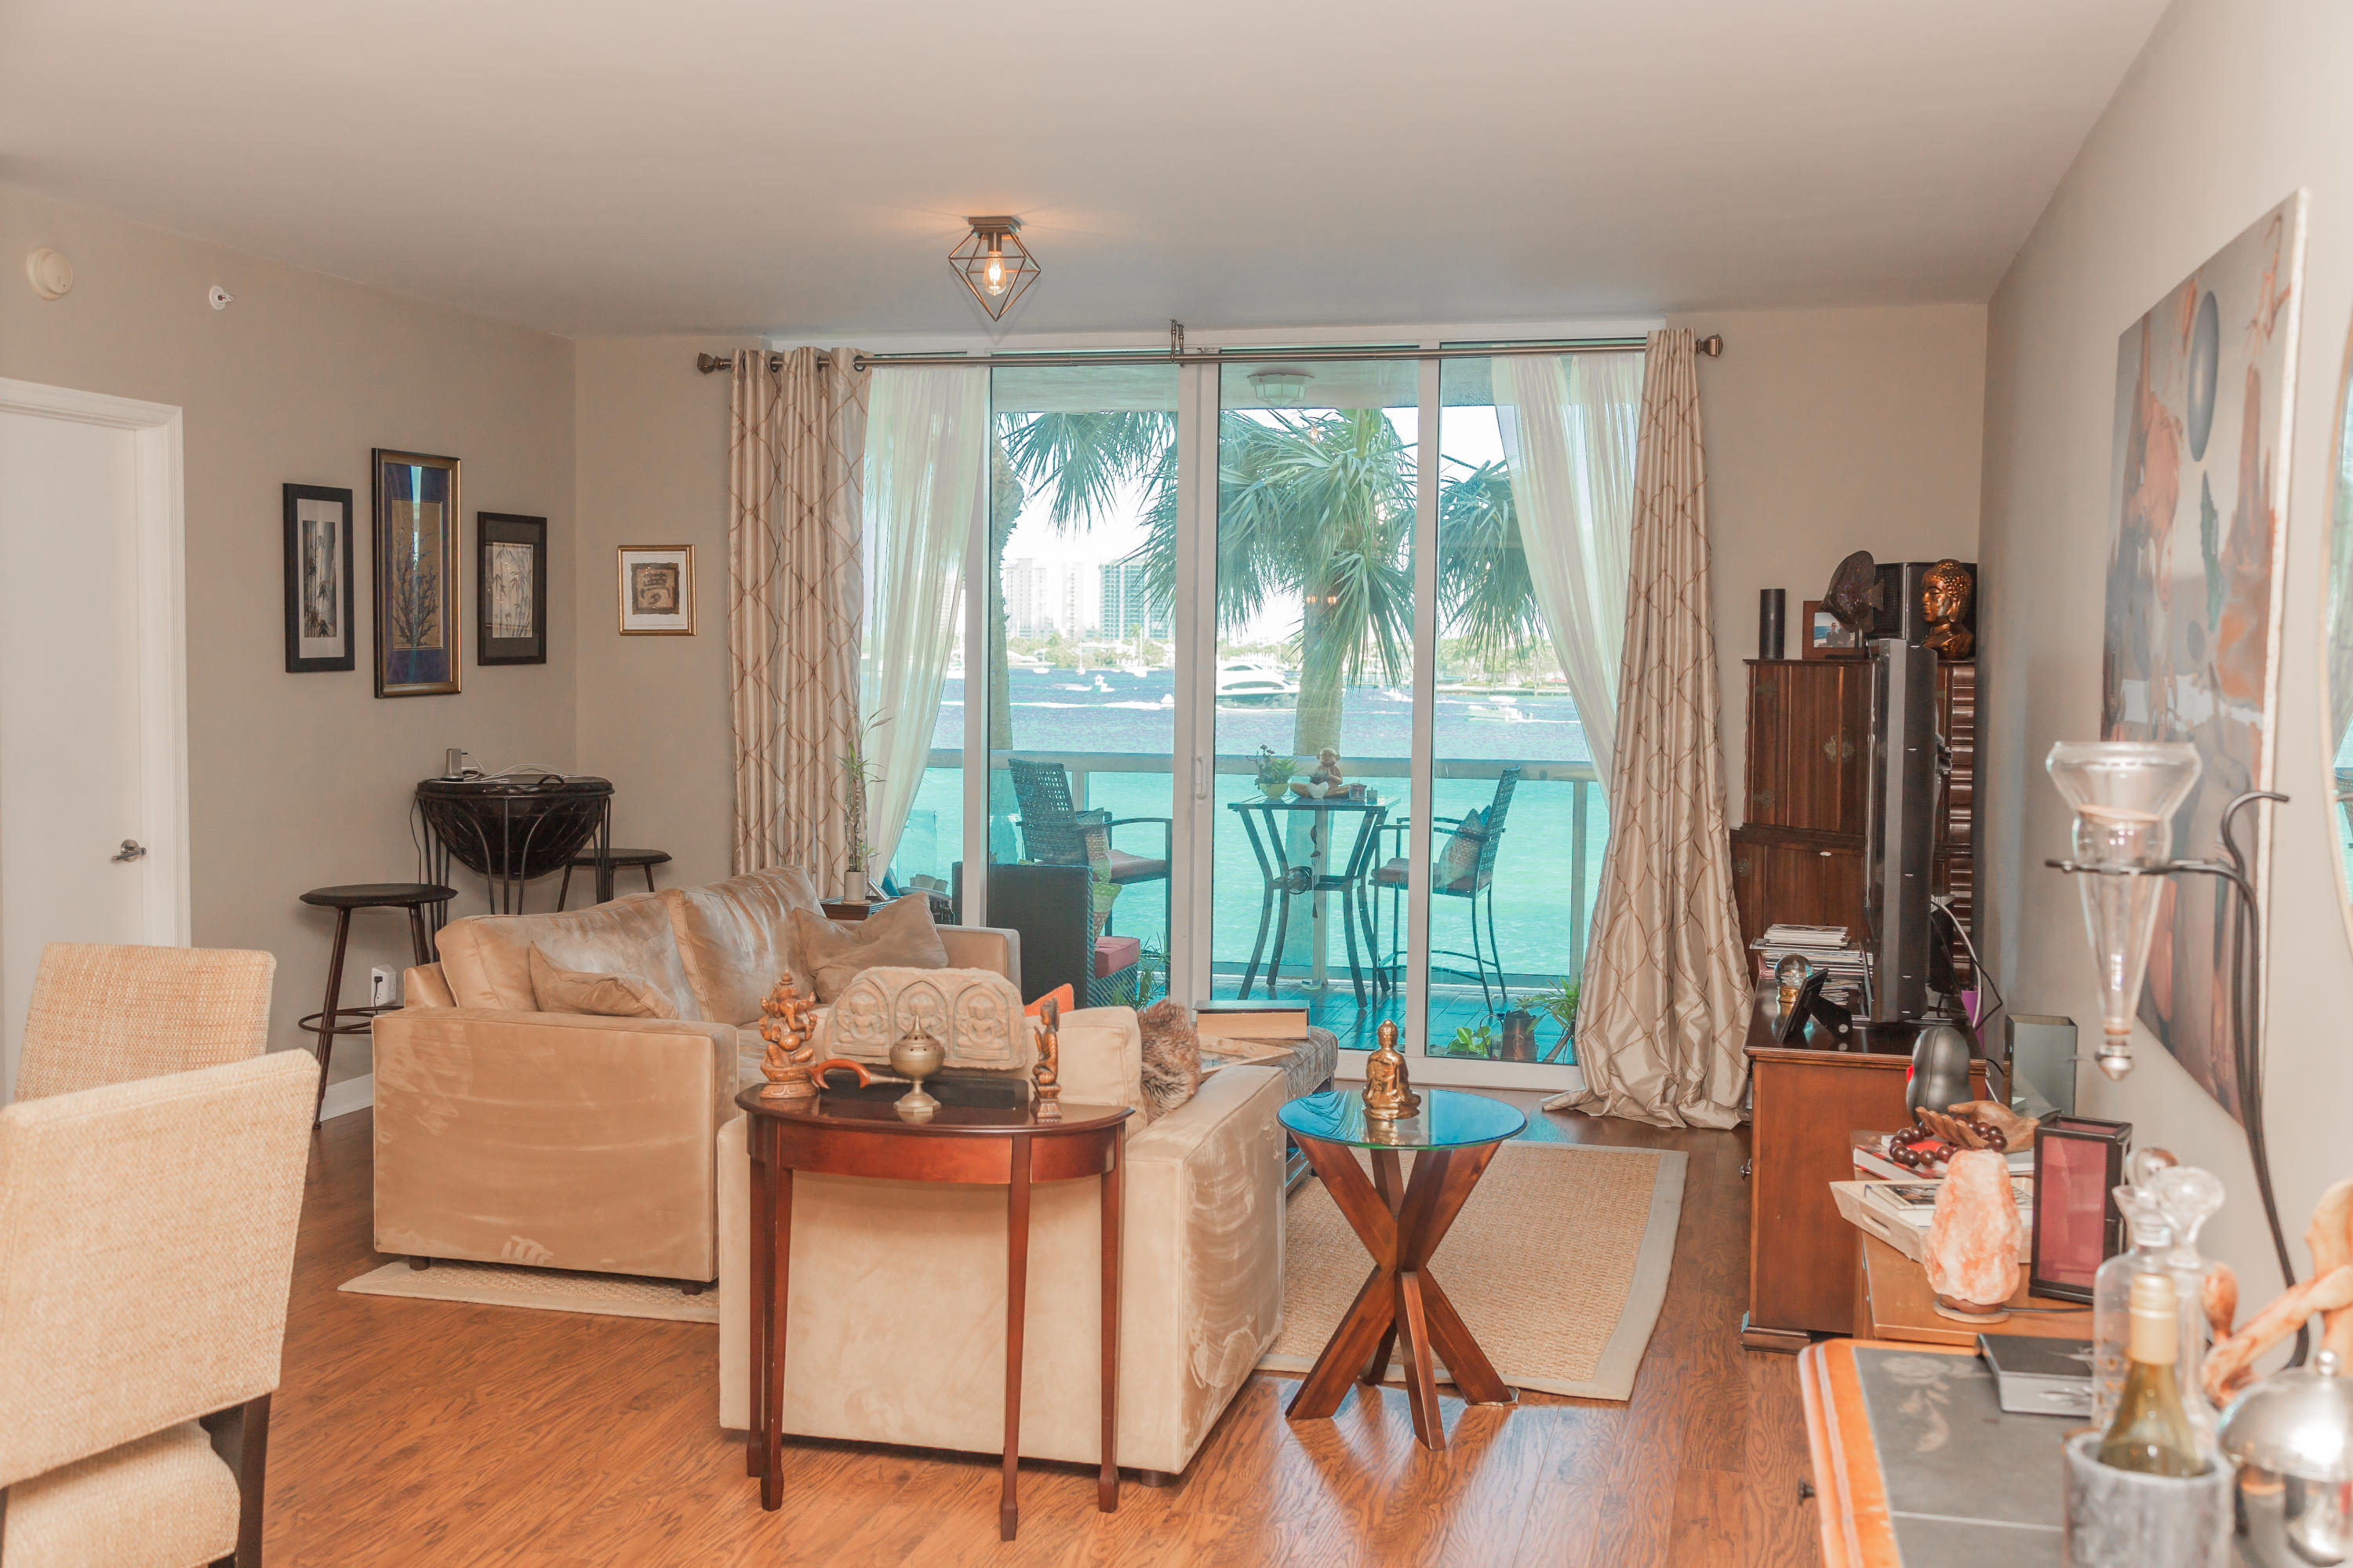 2640 Lake Shore Drive 208, Riviera Beach, Florida 33404, 3 Bedrooms Bedrooms, ,3 BathroomsBathrooms,A,Condominium,Lake Shore,RX-10595375